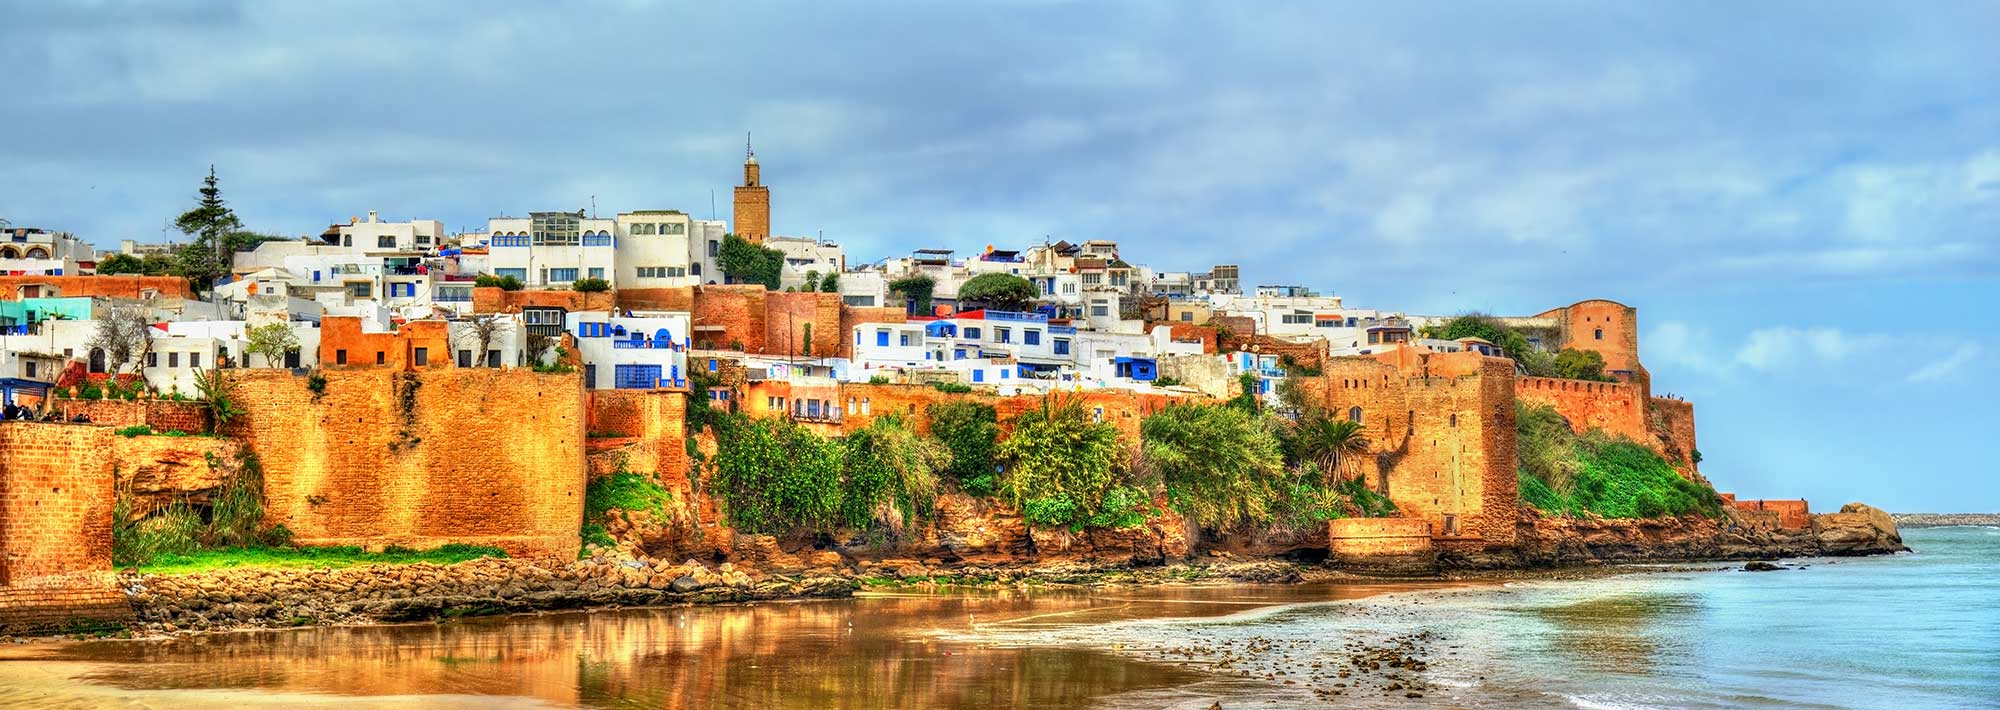 Morocco April-May 2019 | jhtravel.org